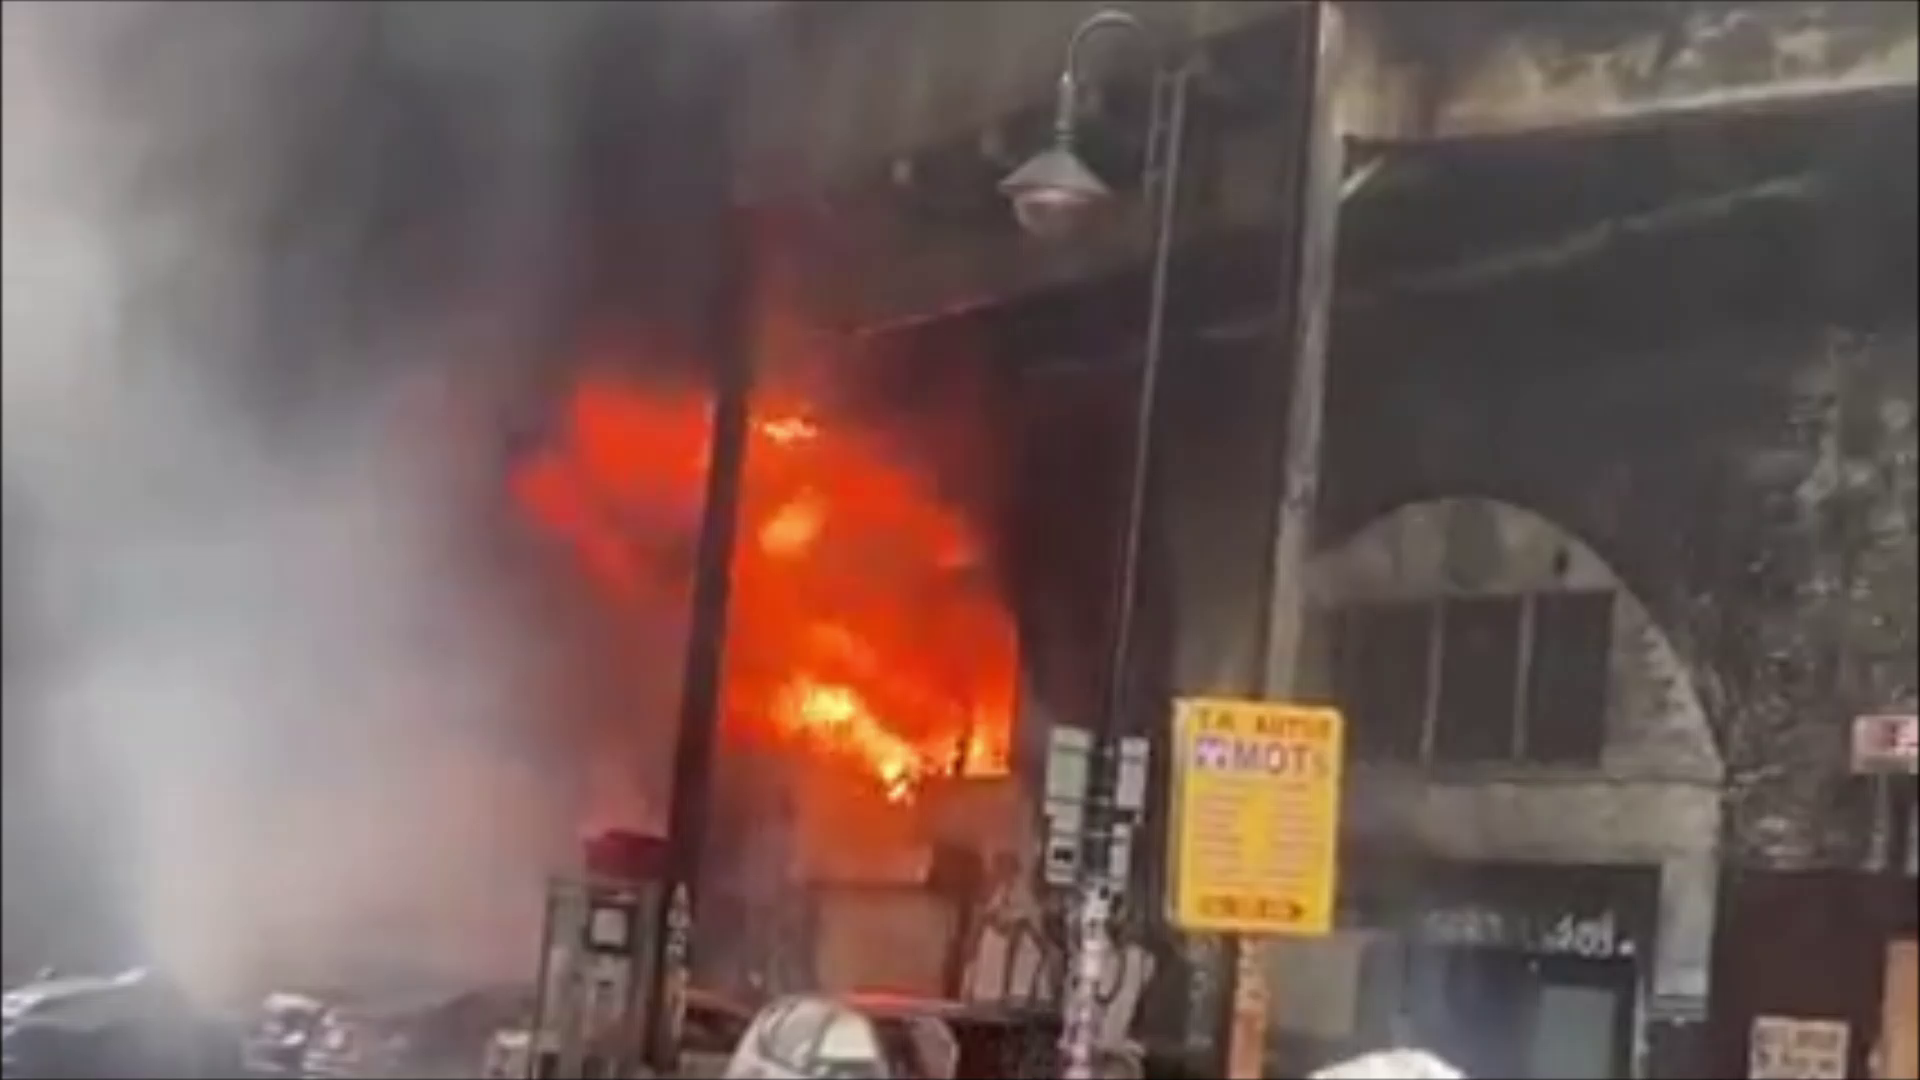 footage of the fire raging at Elephant and Castle, London